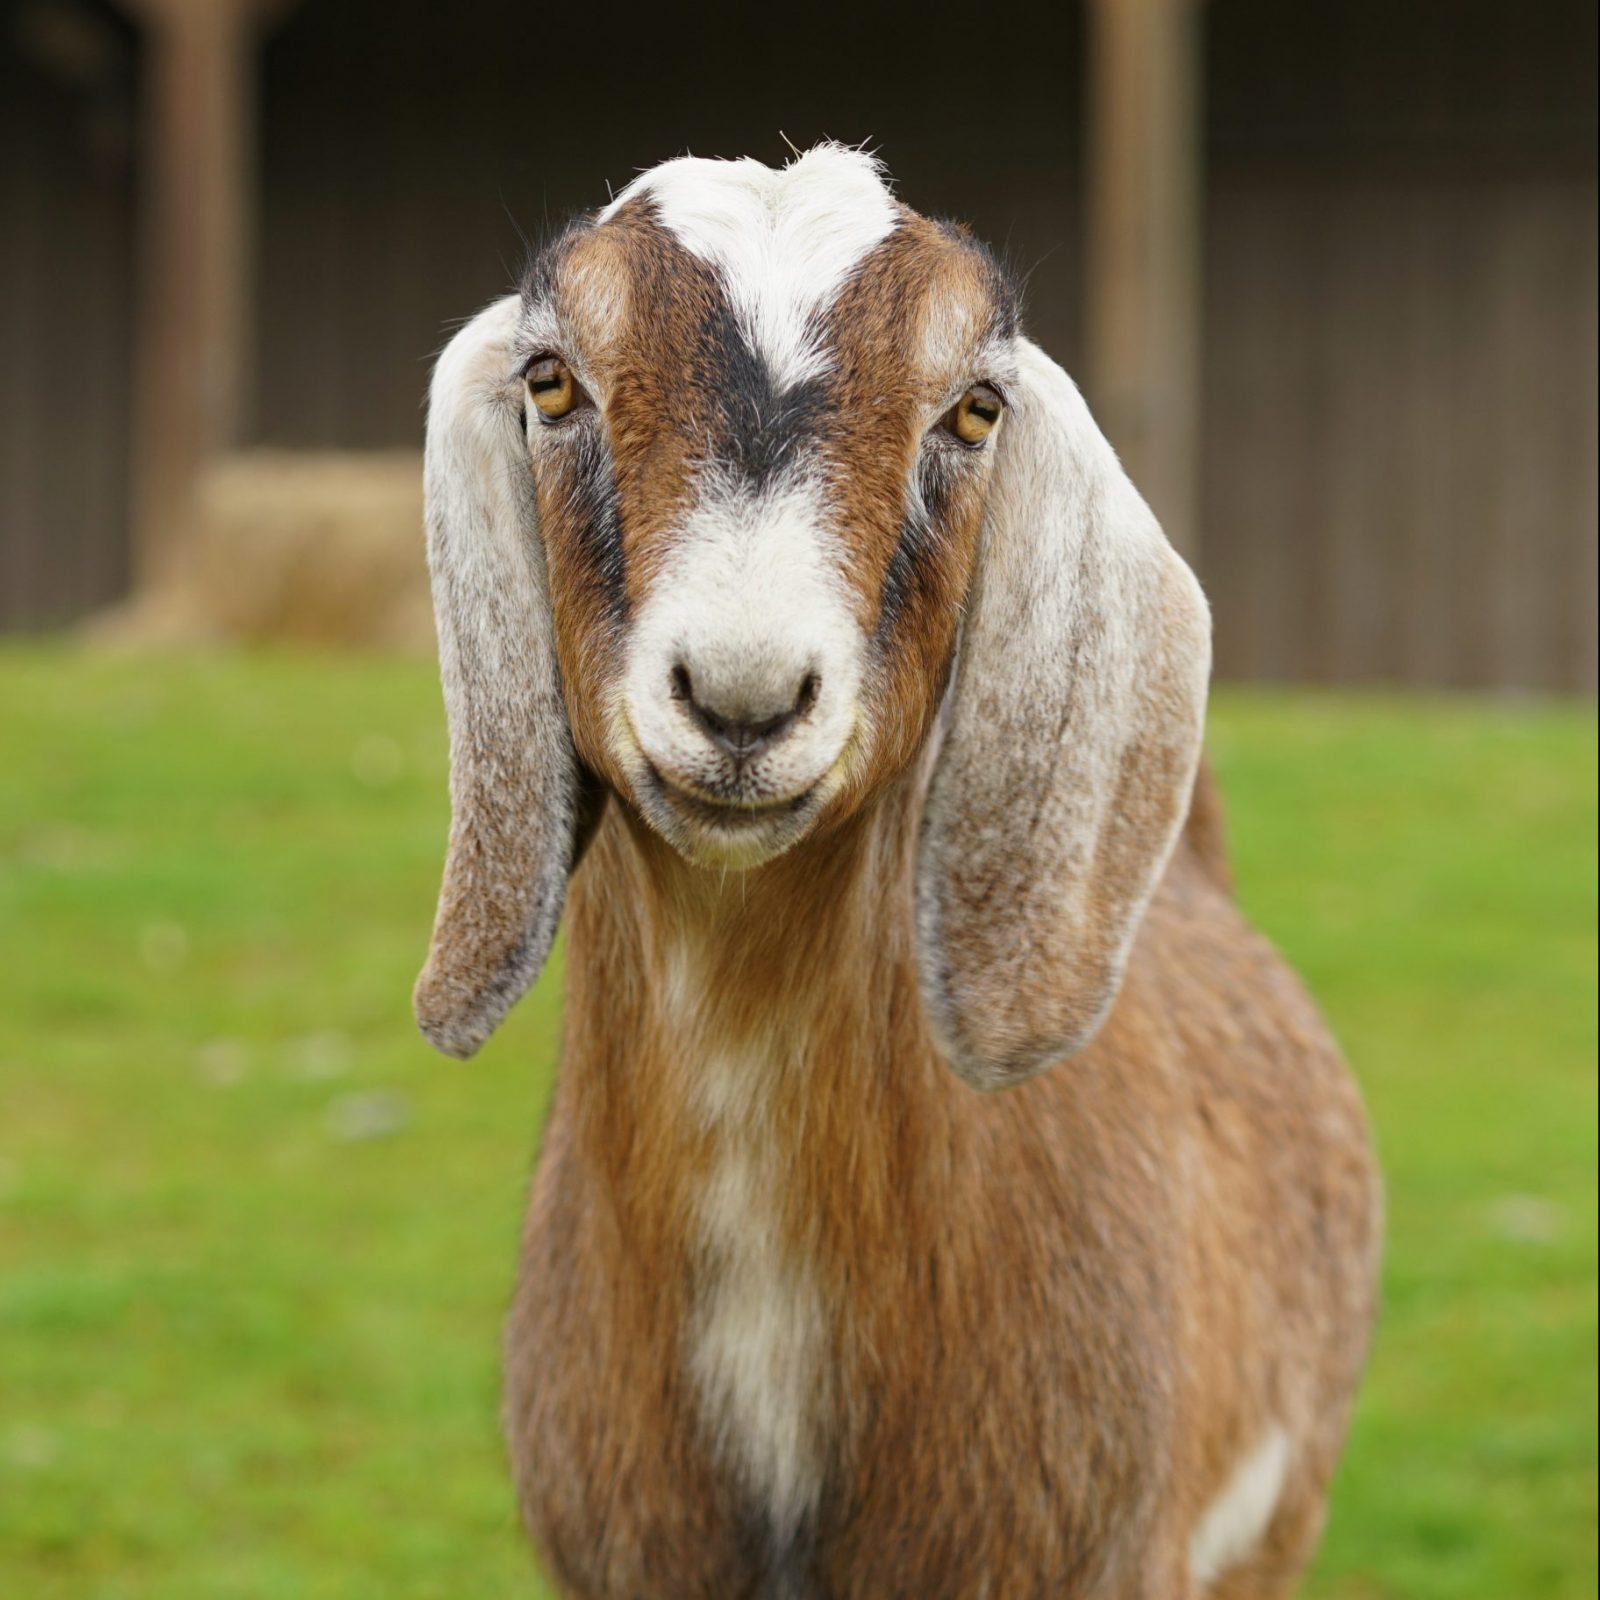 Maurice goat at Farm Sanctuary